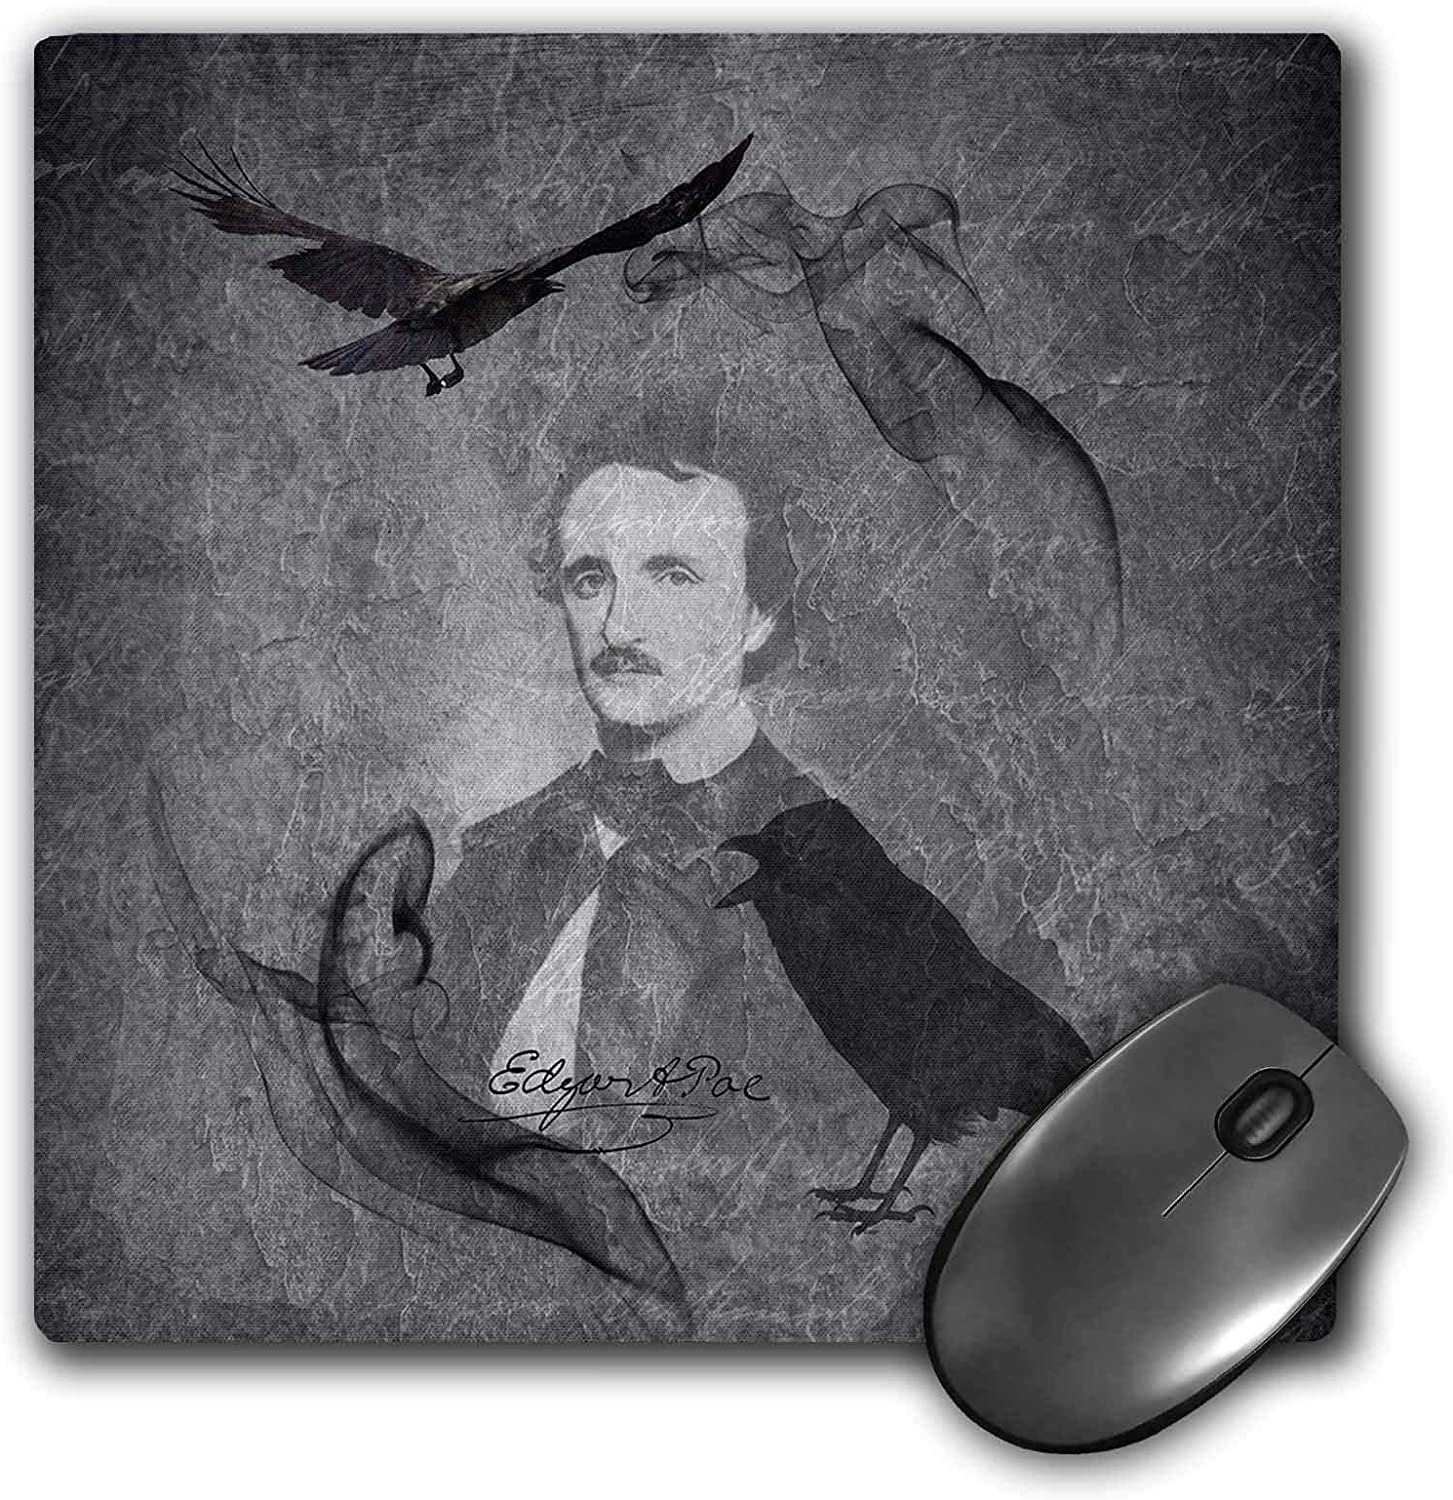 Poe with His Novel -The Raven- 3dRose Mouse Pad Showing E 8 by 8-Inches mp/_289792/_1 A